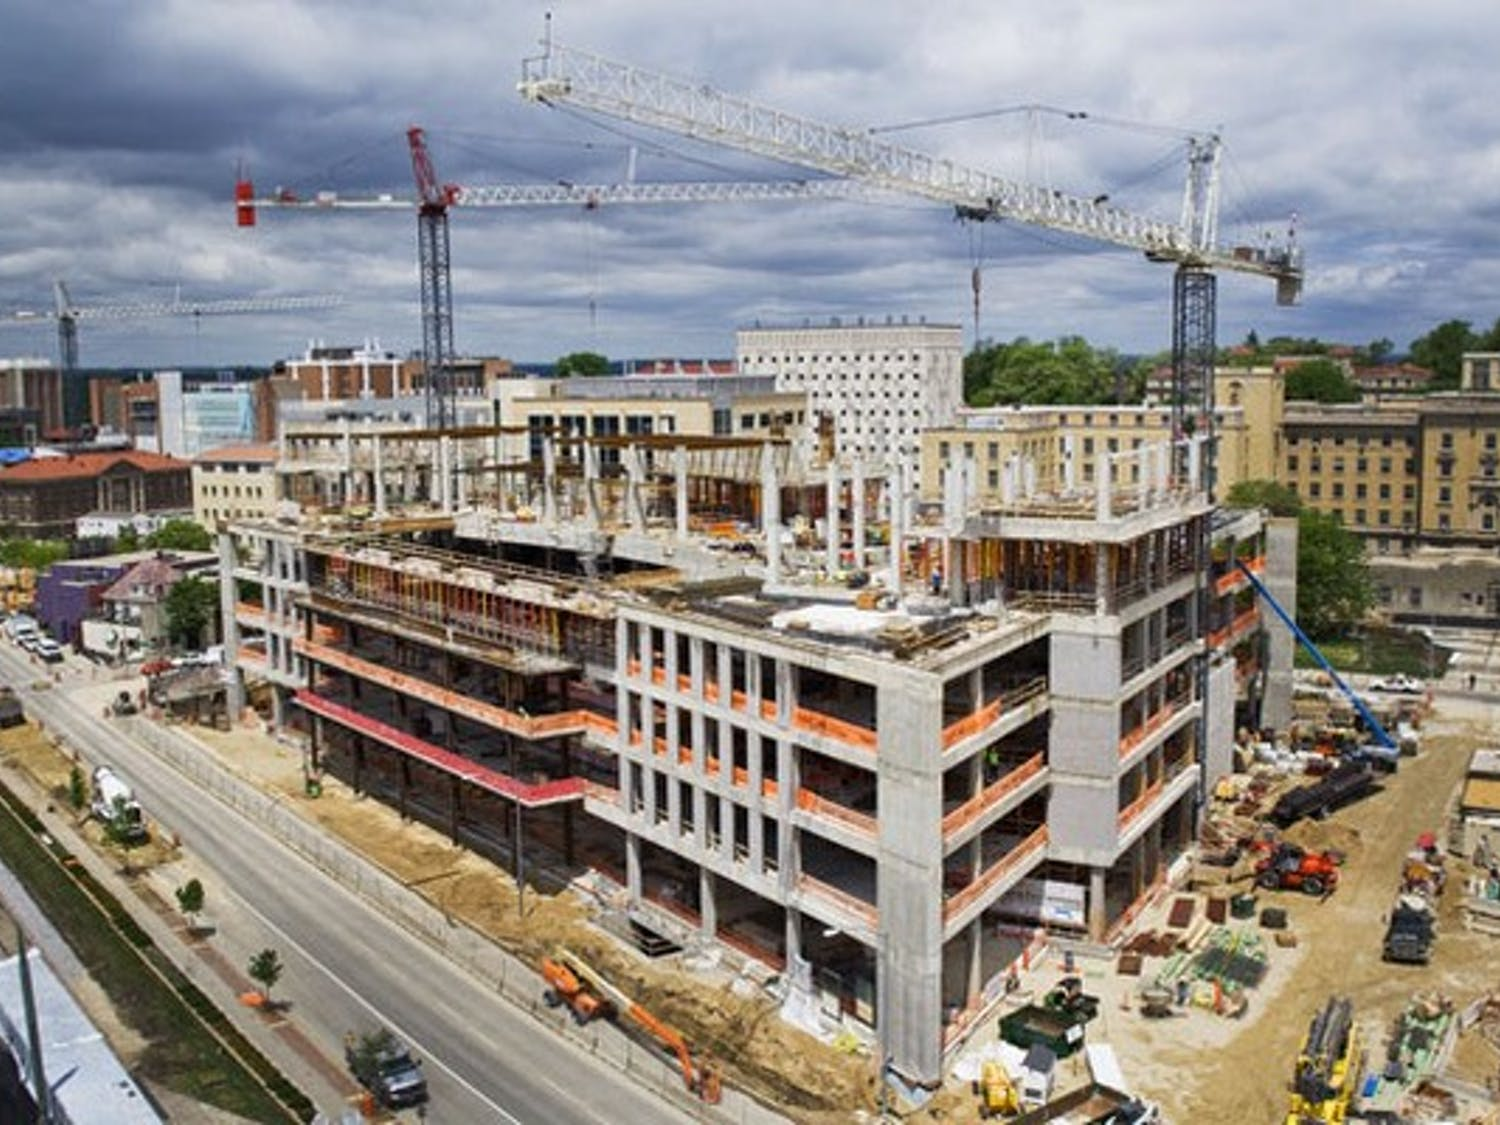 Wisconsin Institutes for Discovery finish external framework phase of construction